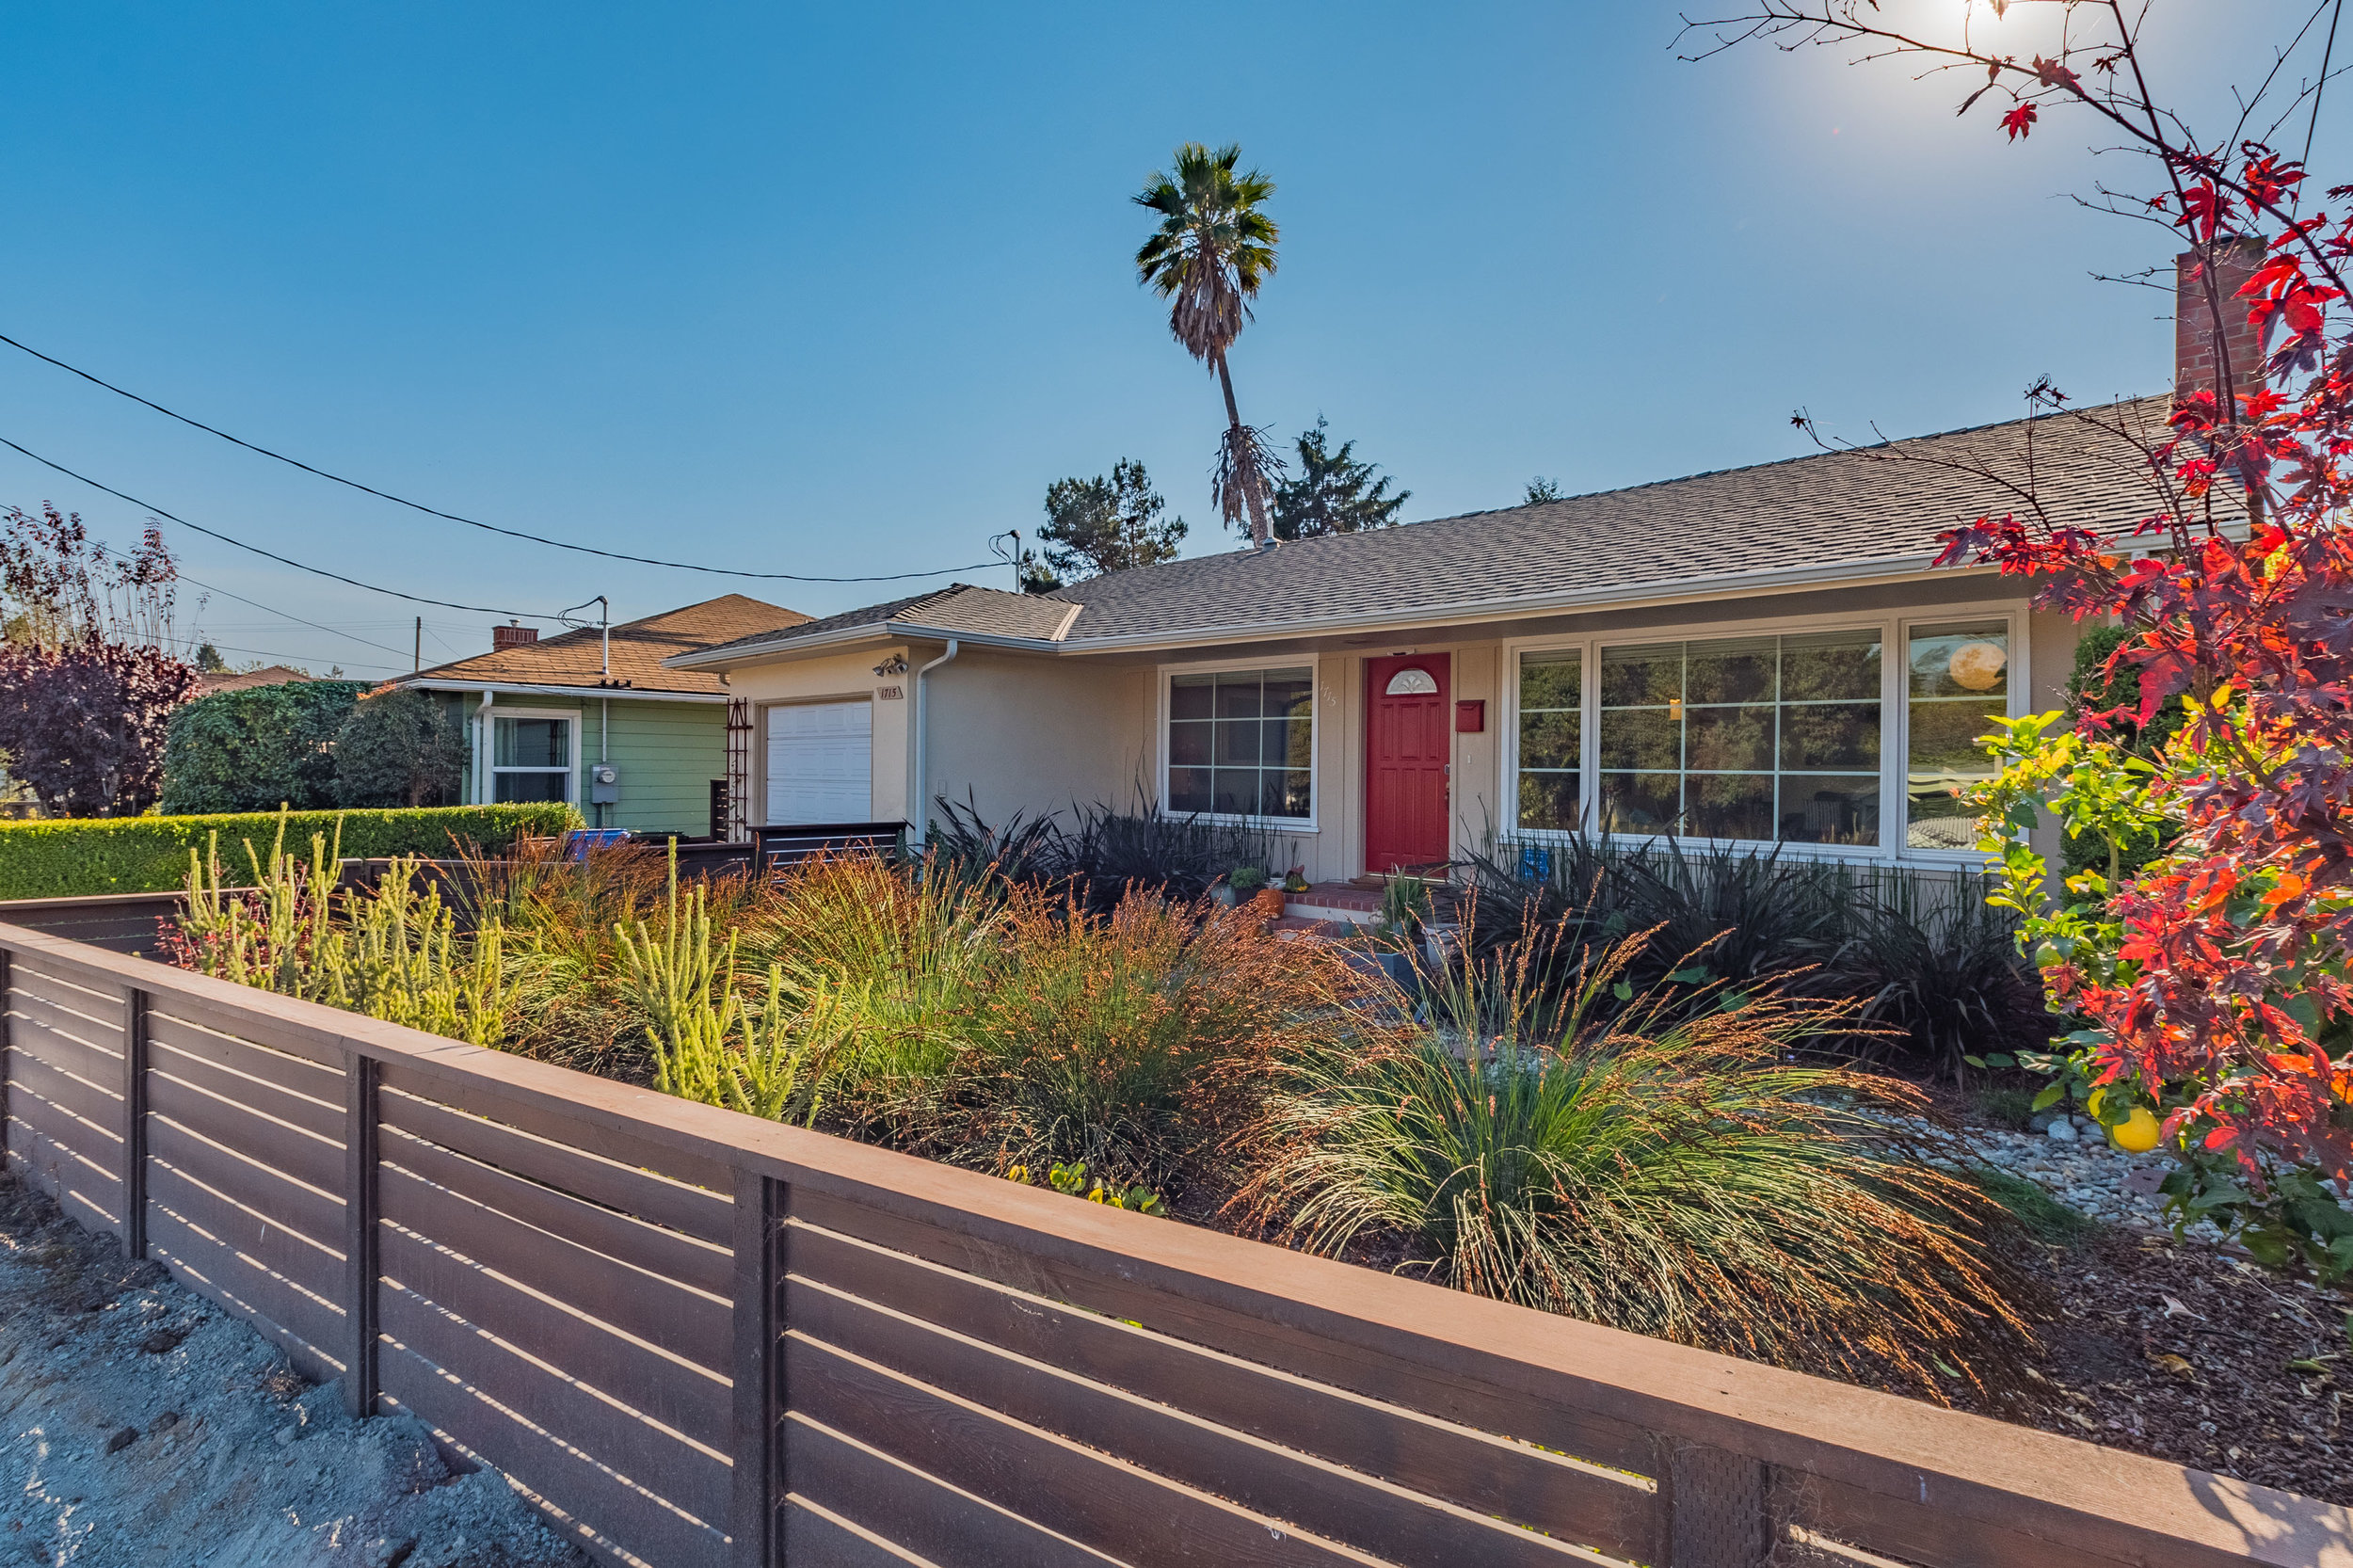 SOLD 1715 Bay Street, Santa Cruz • $988,000  3 Bedroom, 2 Bathroom • 1,237 Sq. Ft.